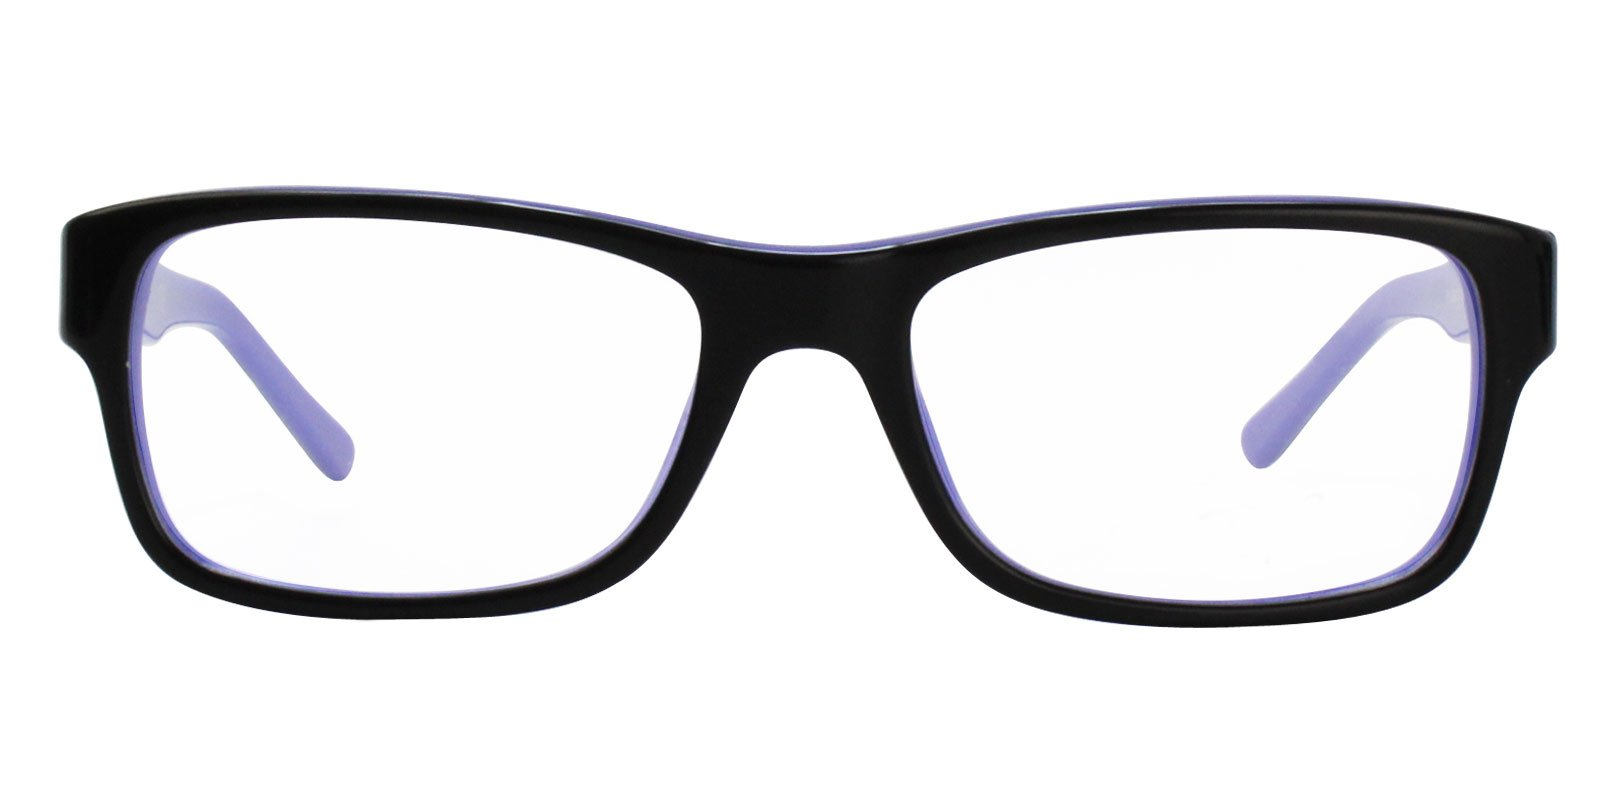 Ray Ban Rx - RX5268 Black Rectangular Unisex Eyeglasses - 52mm-Eyeglasses-Designer Eyes